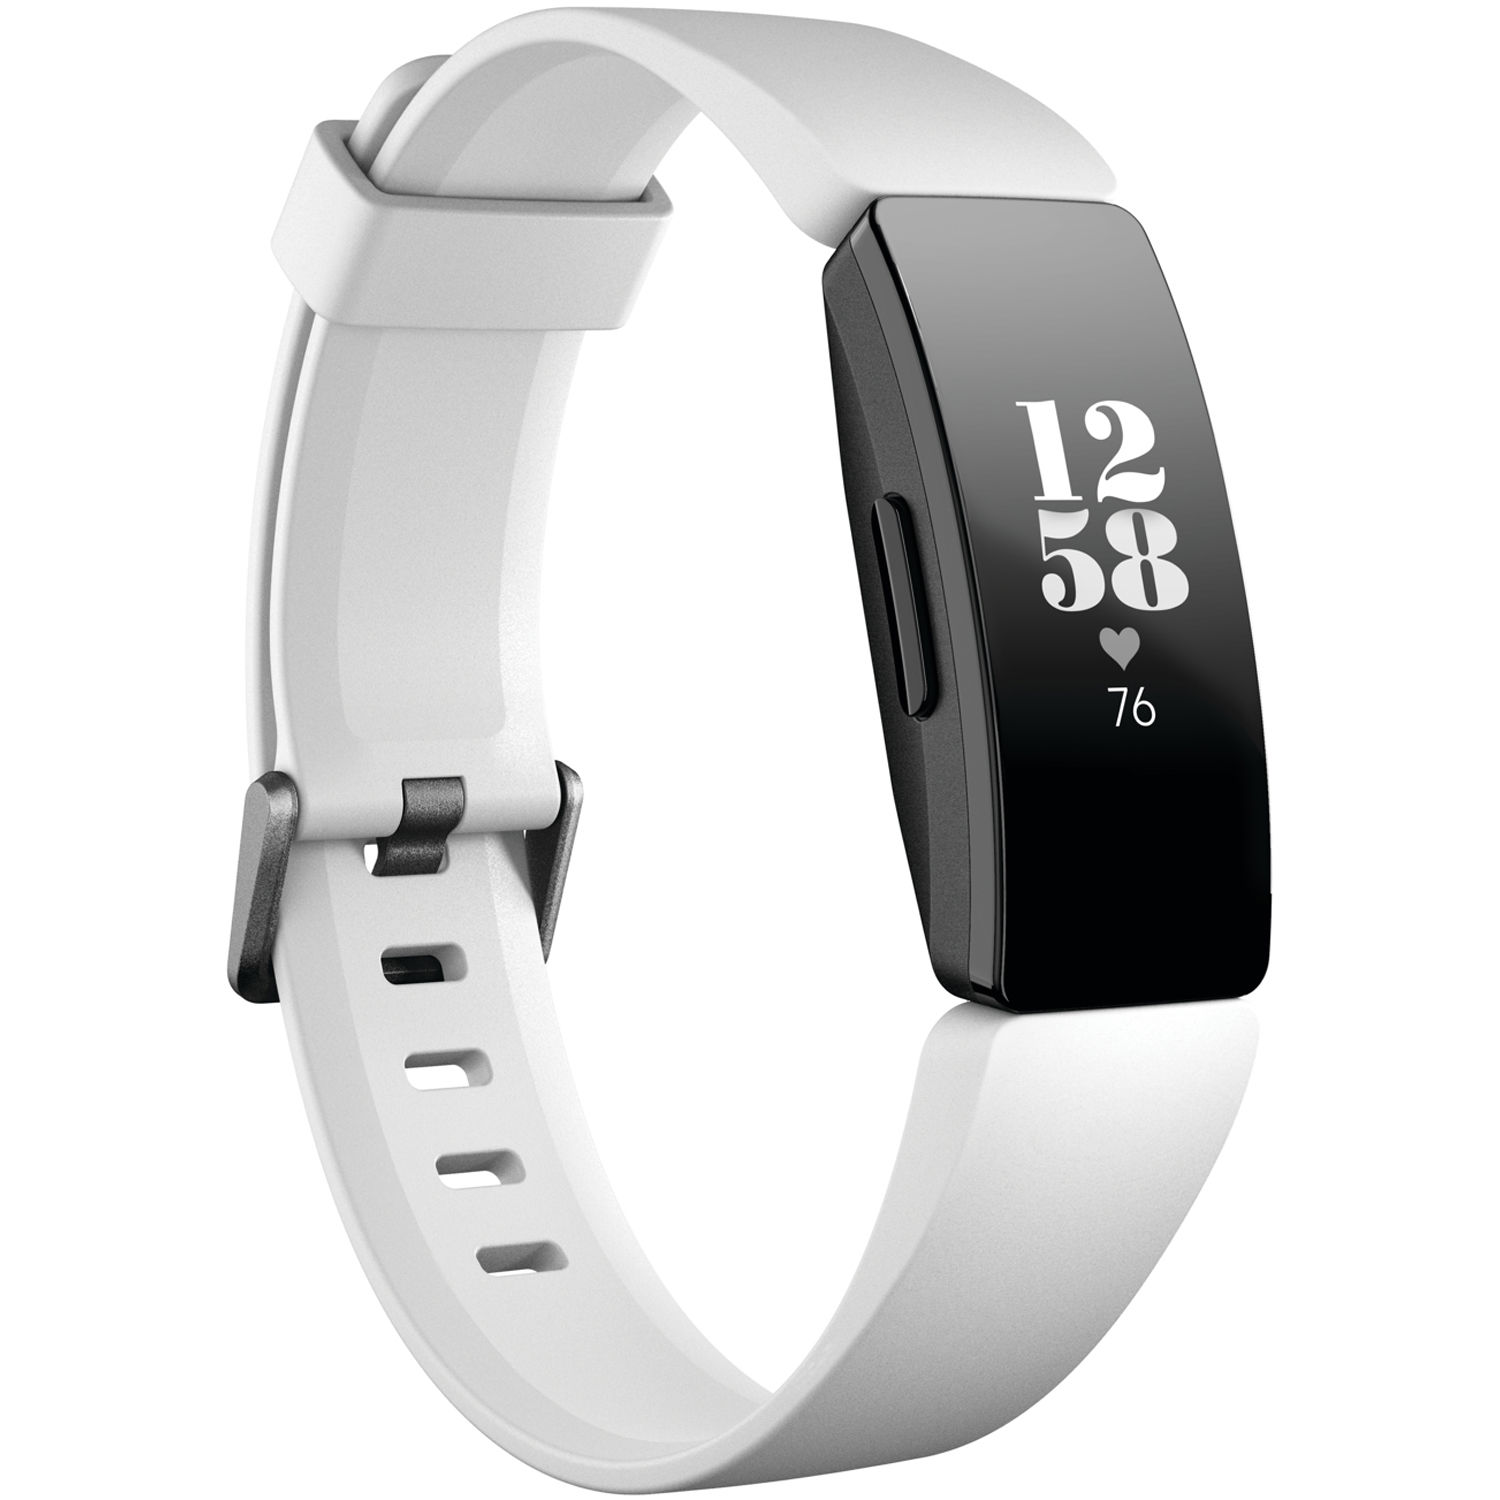 Fitbit Inspire HR Fitness Tracker (White/Black) FB413BKWT B&H